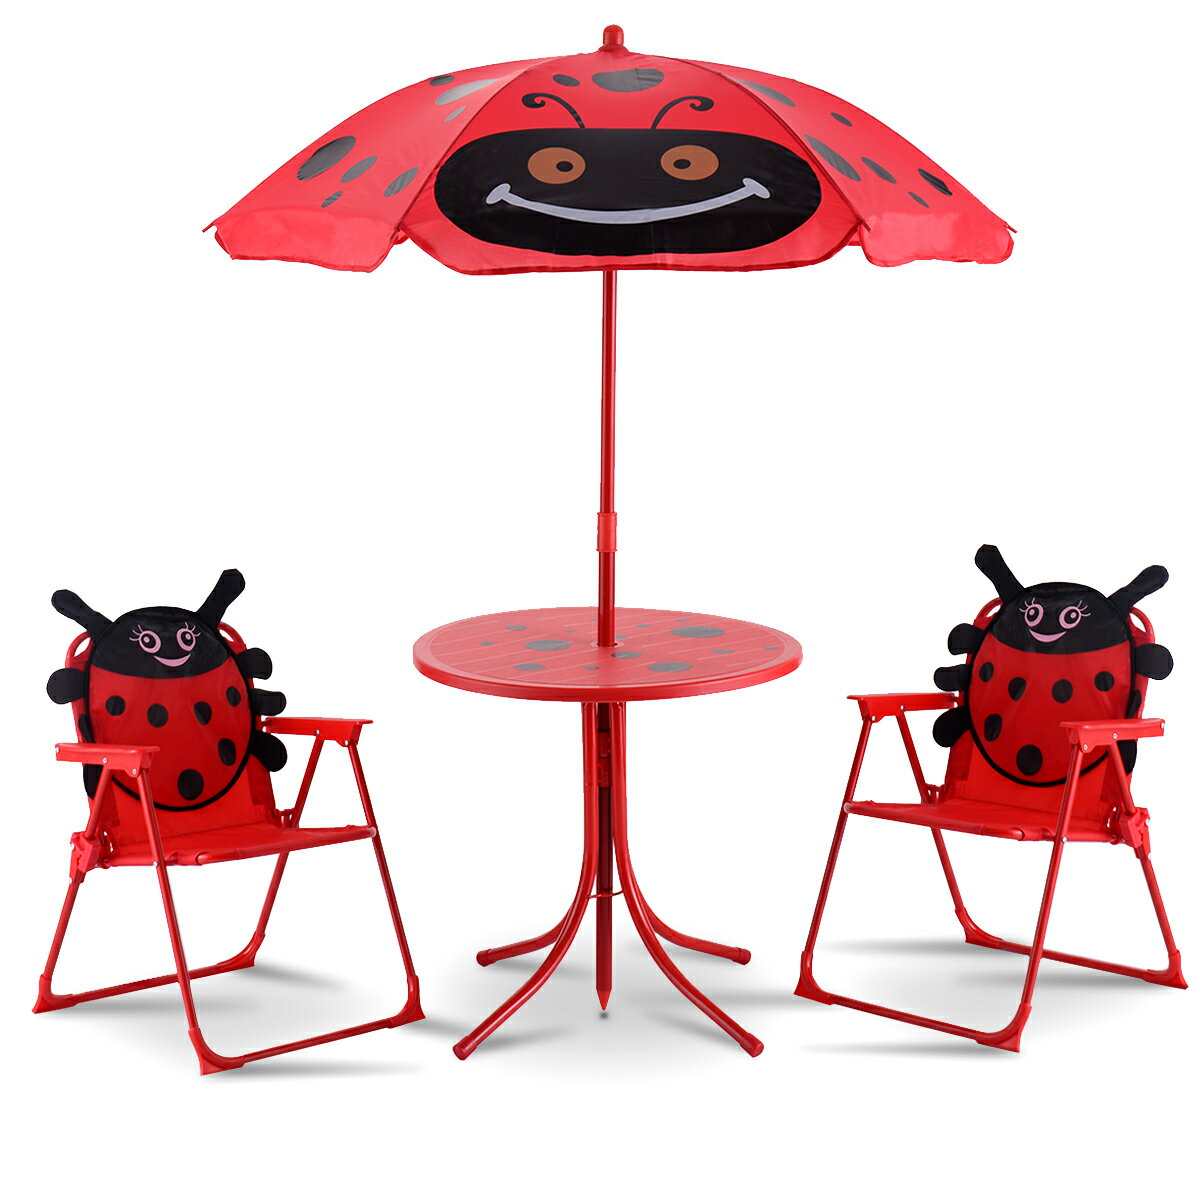 Fabulous Costway Kids Patio Set Table And 2 Folding Chairs W Umbrella Beetle Outdoor Garden Yard Machost Co Dining Chair Design Ideas Machostcouk